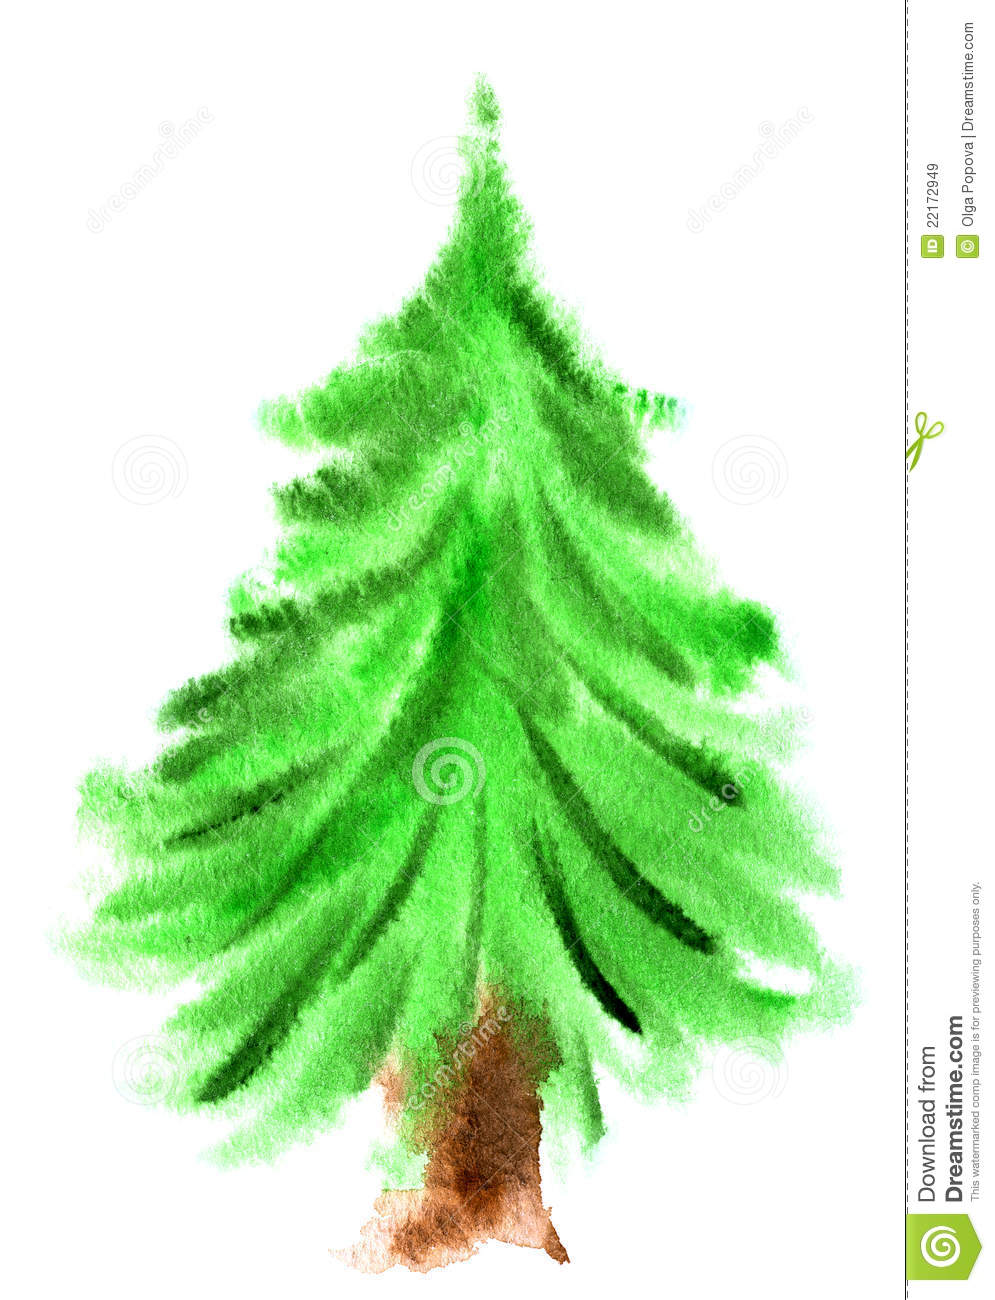 Watercolor Christmas Tree Royalty Free Stock Images - Image: 22172949